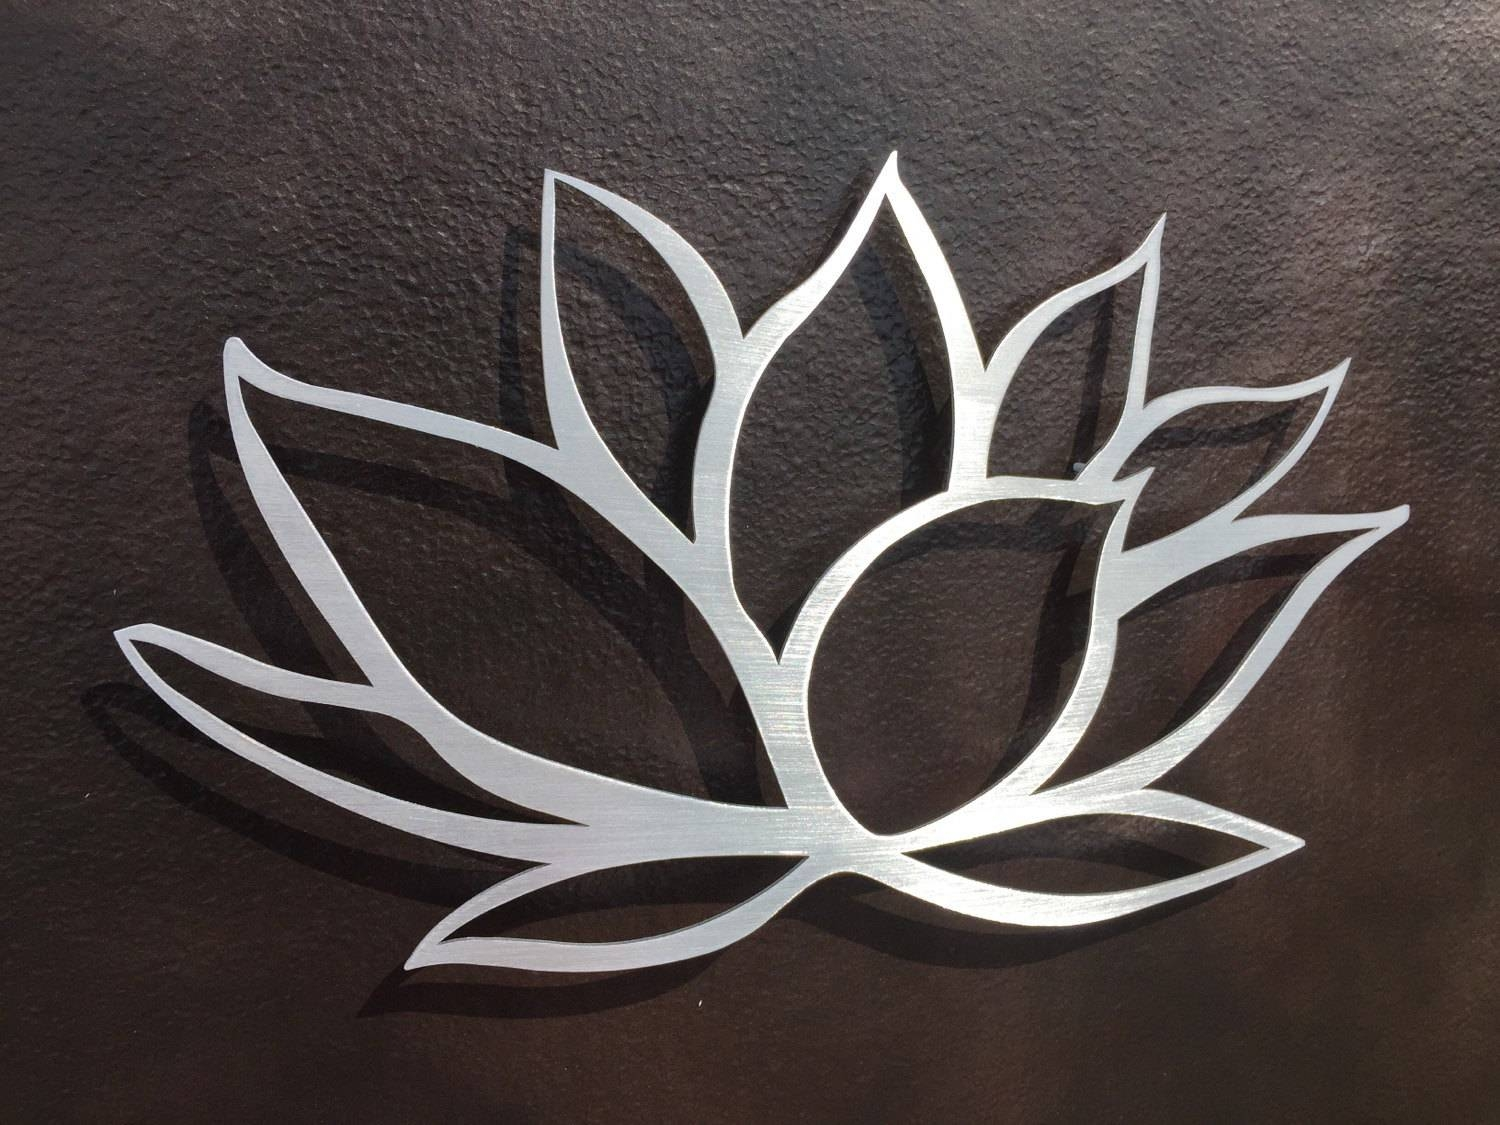 41 Silver Metal Wall Art Flowers, Home Metal Wall Art Wall Decor Regarding Most Recent Silver Metal Wall Art Flowers (View 3 of 20)